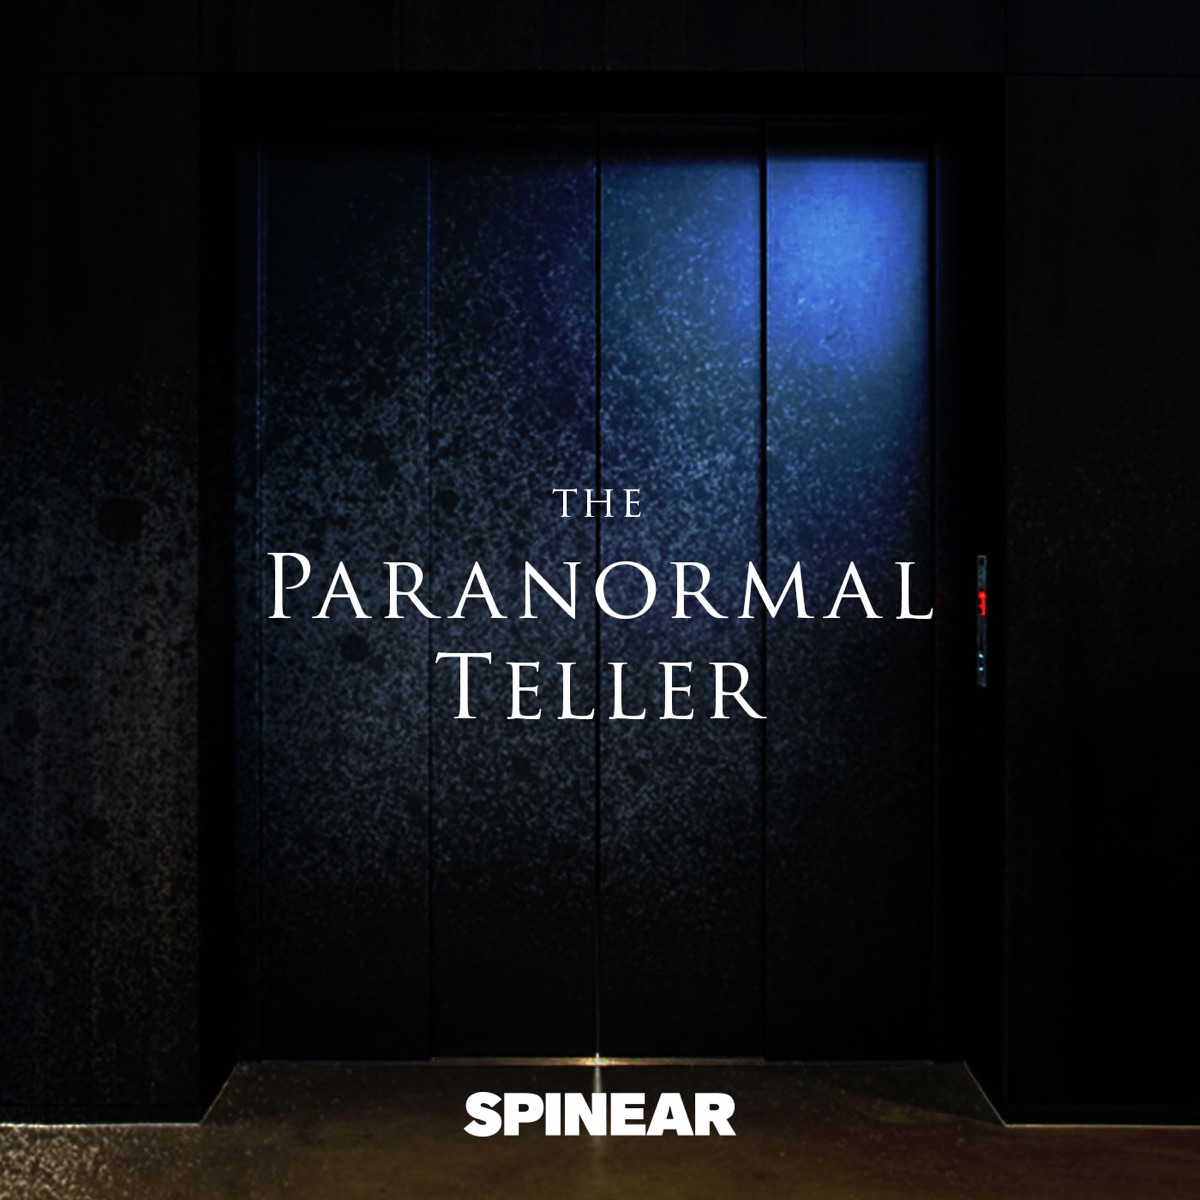 THE PARANORMAL TELLER